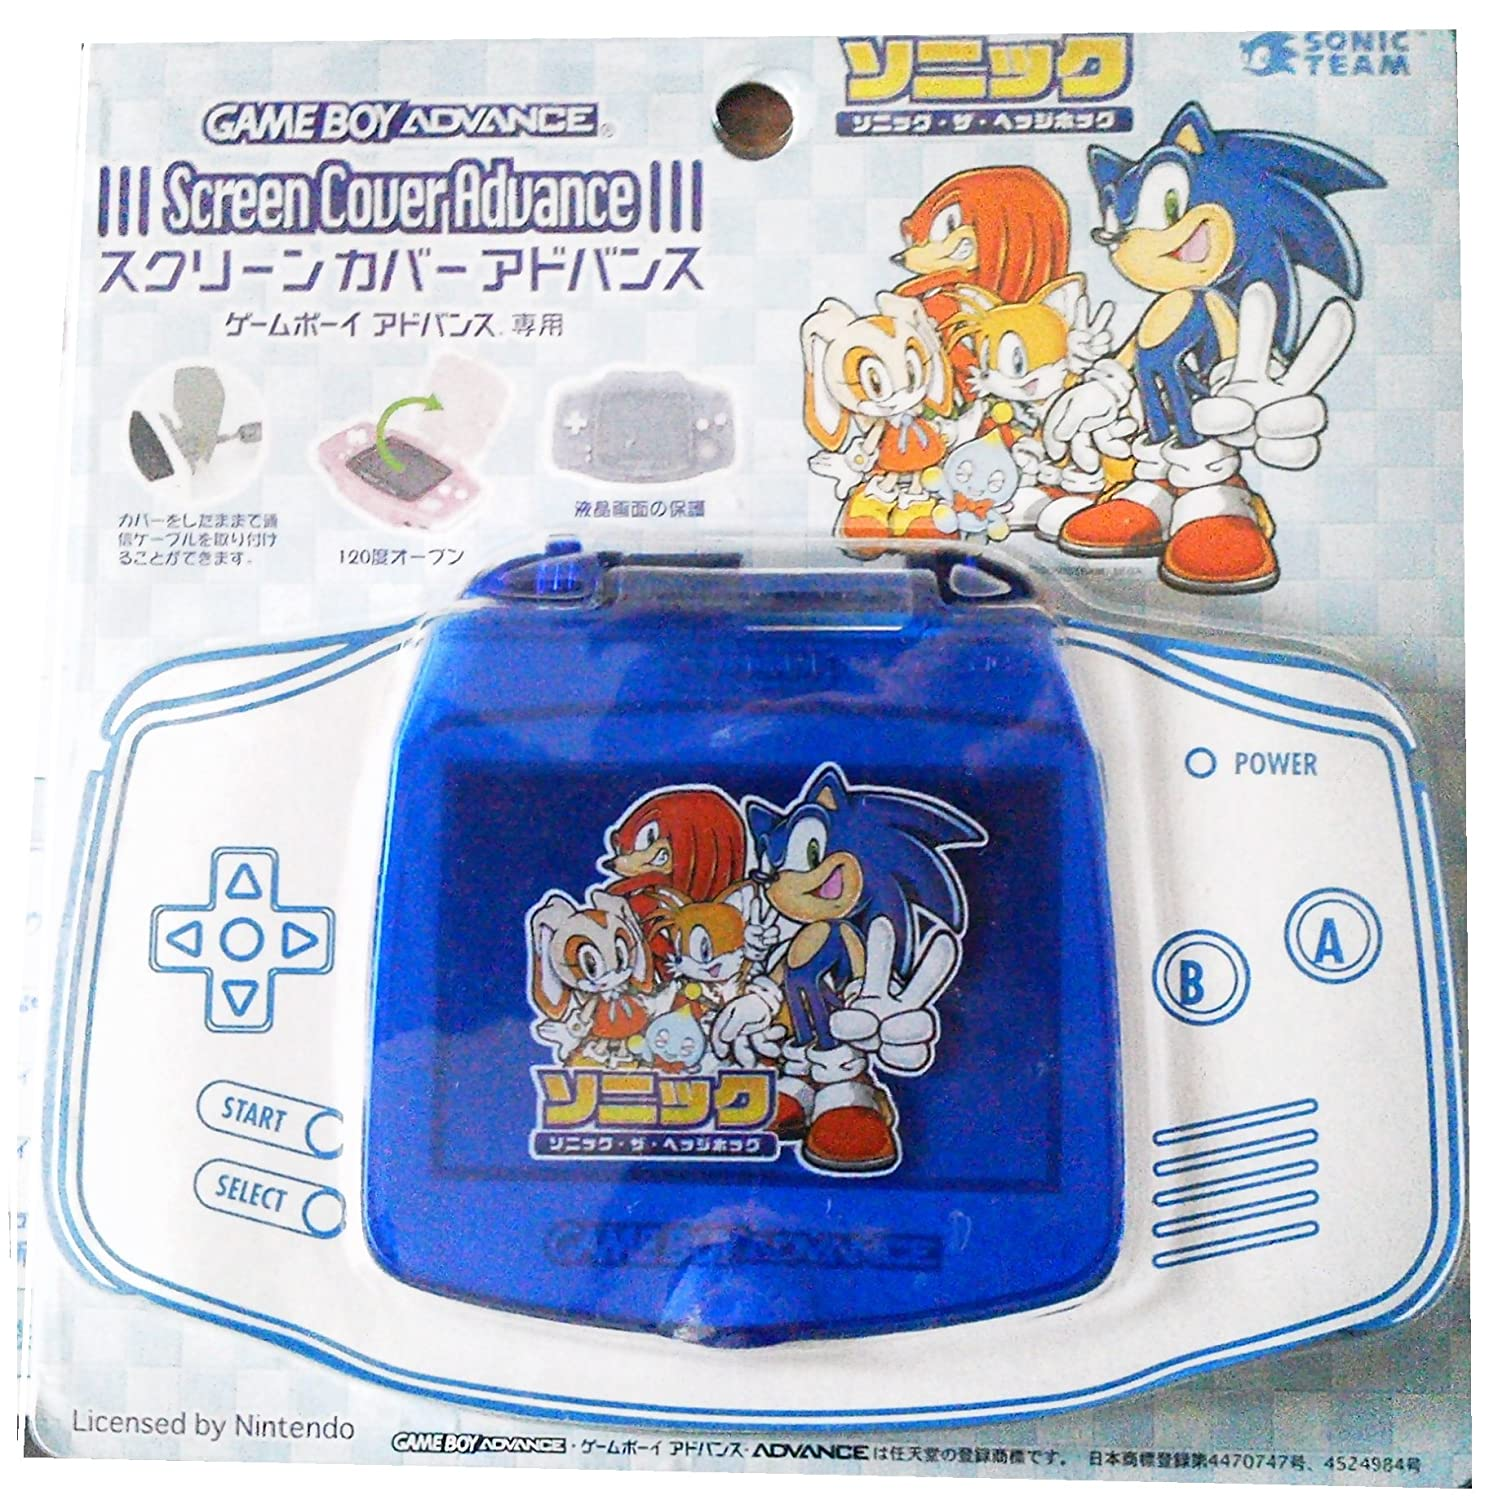 Sonic the Hedgehog Gameboy Advance Screen Cover